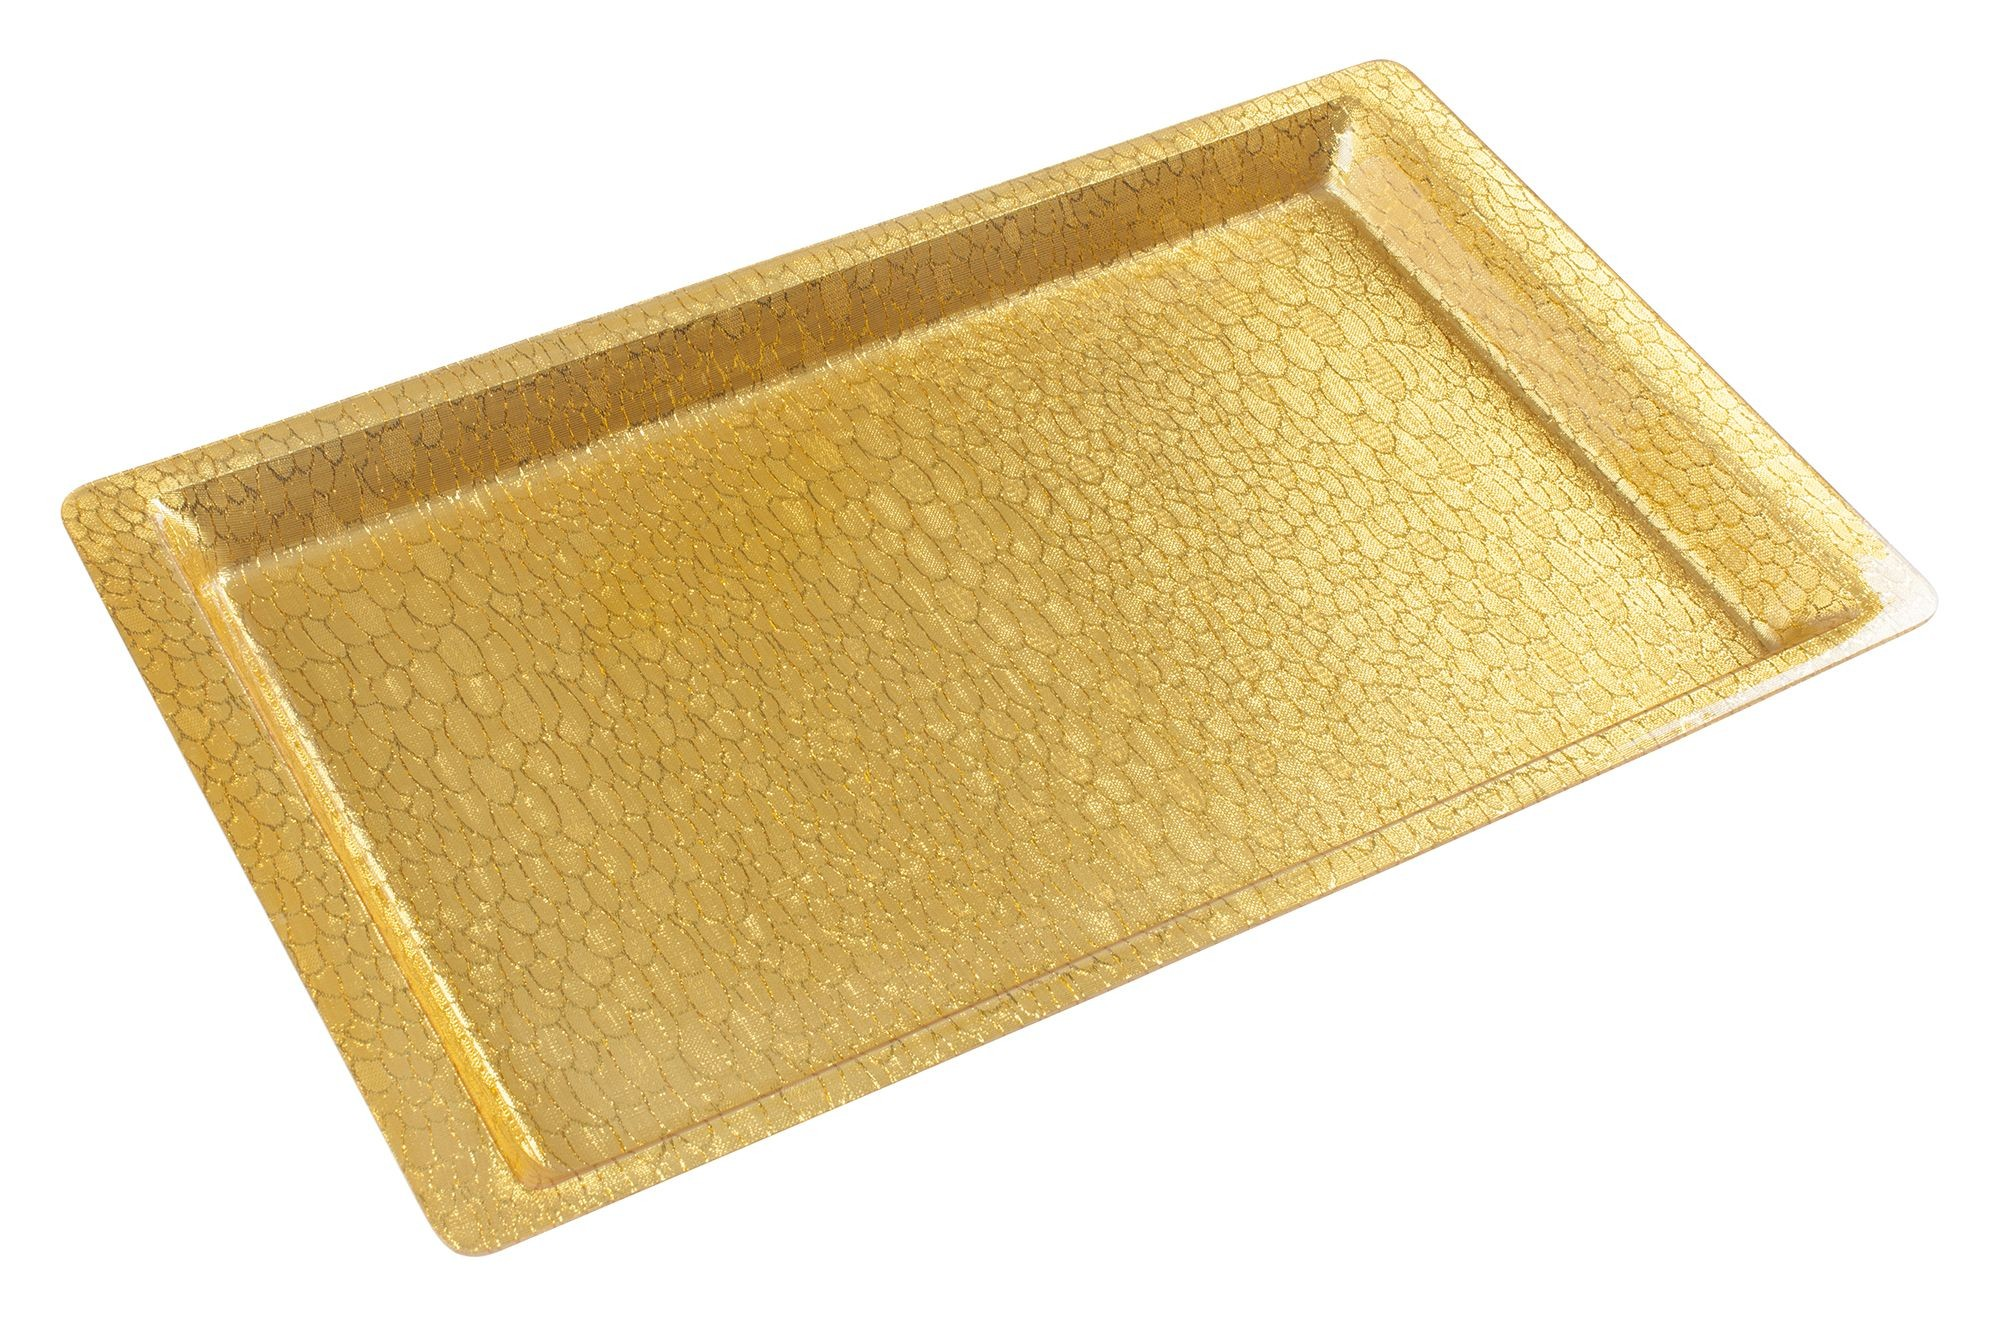 "Gold Full Size Textured Acrylic Display Tray, 20-4/5"" x 12-4/5"""